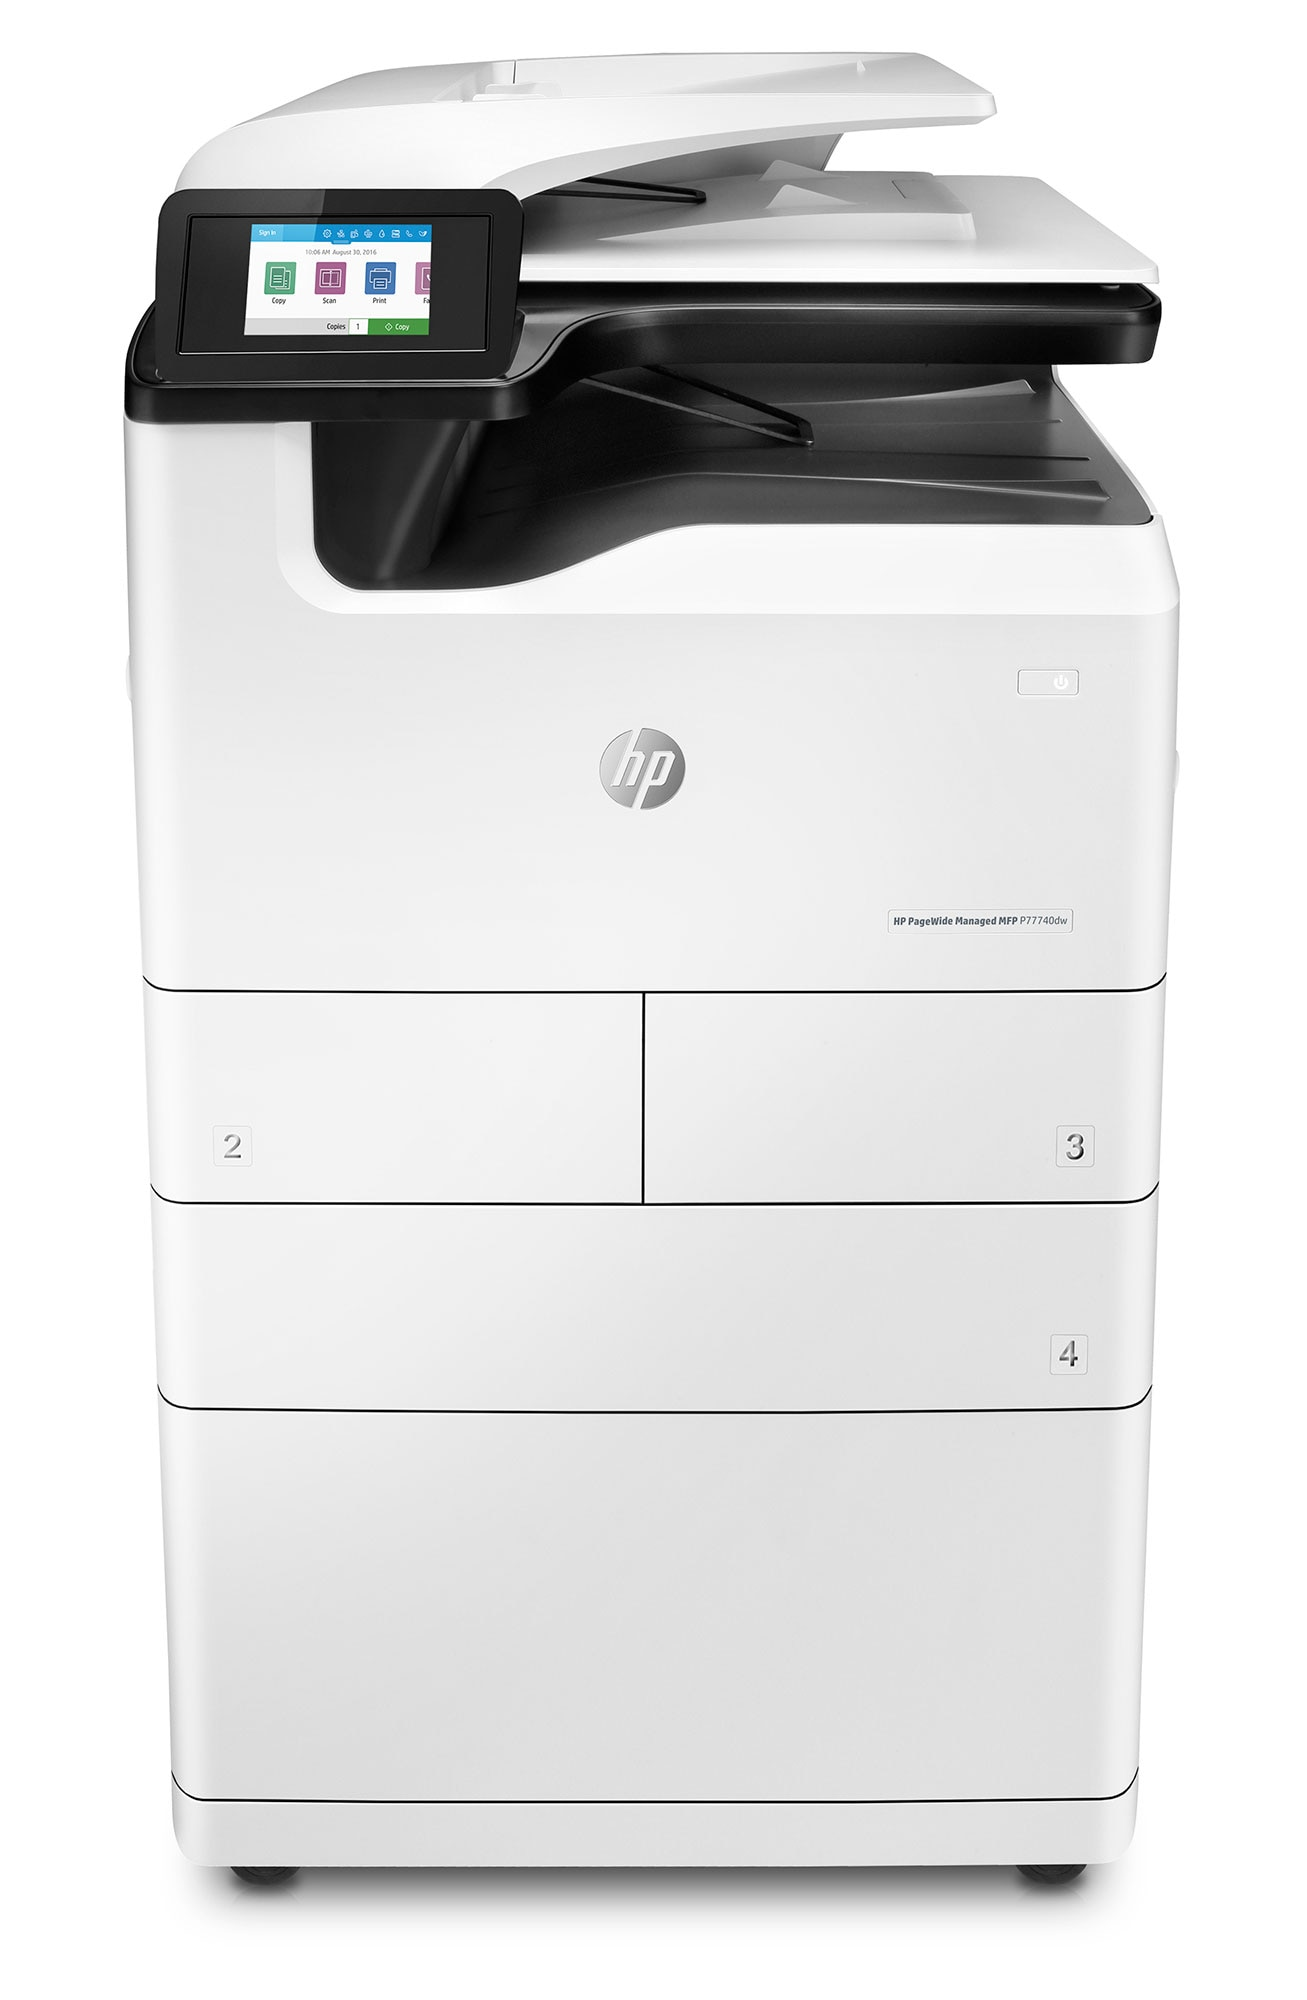 HP A32 MFP Managed MFPs and printers  HP® Australia